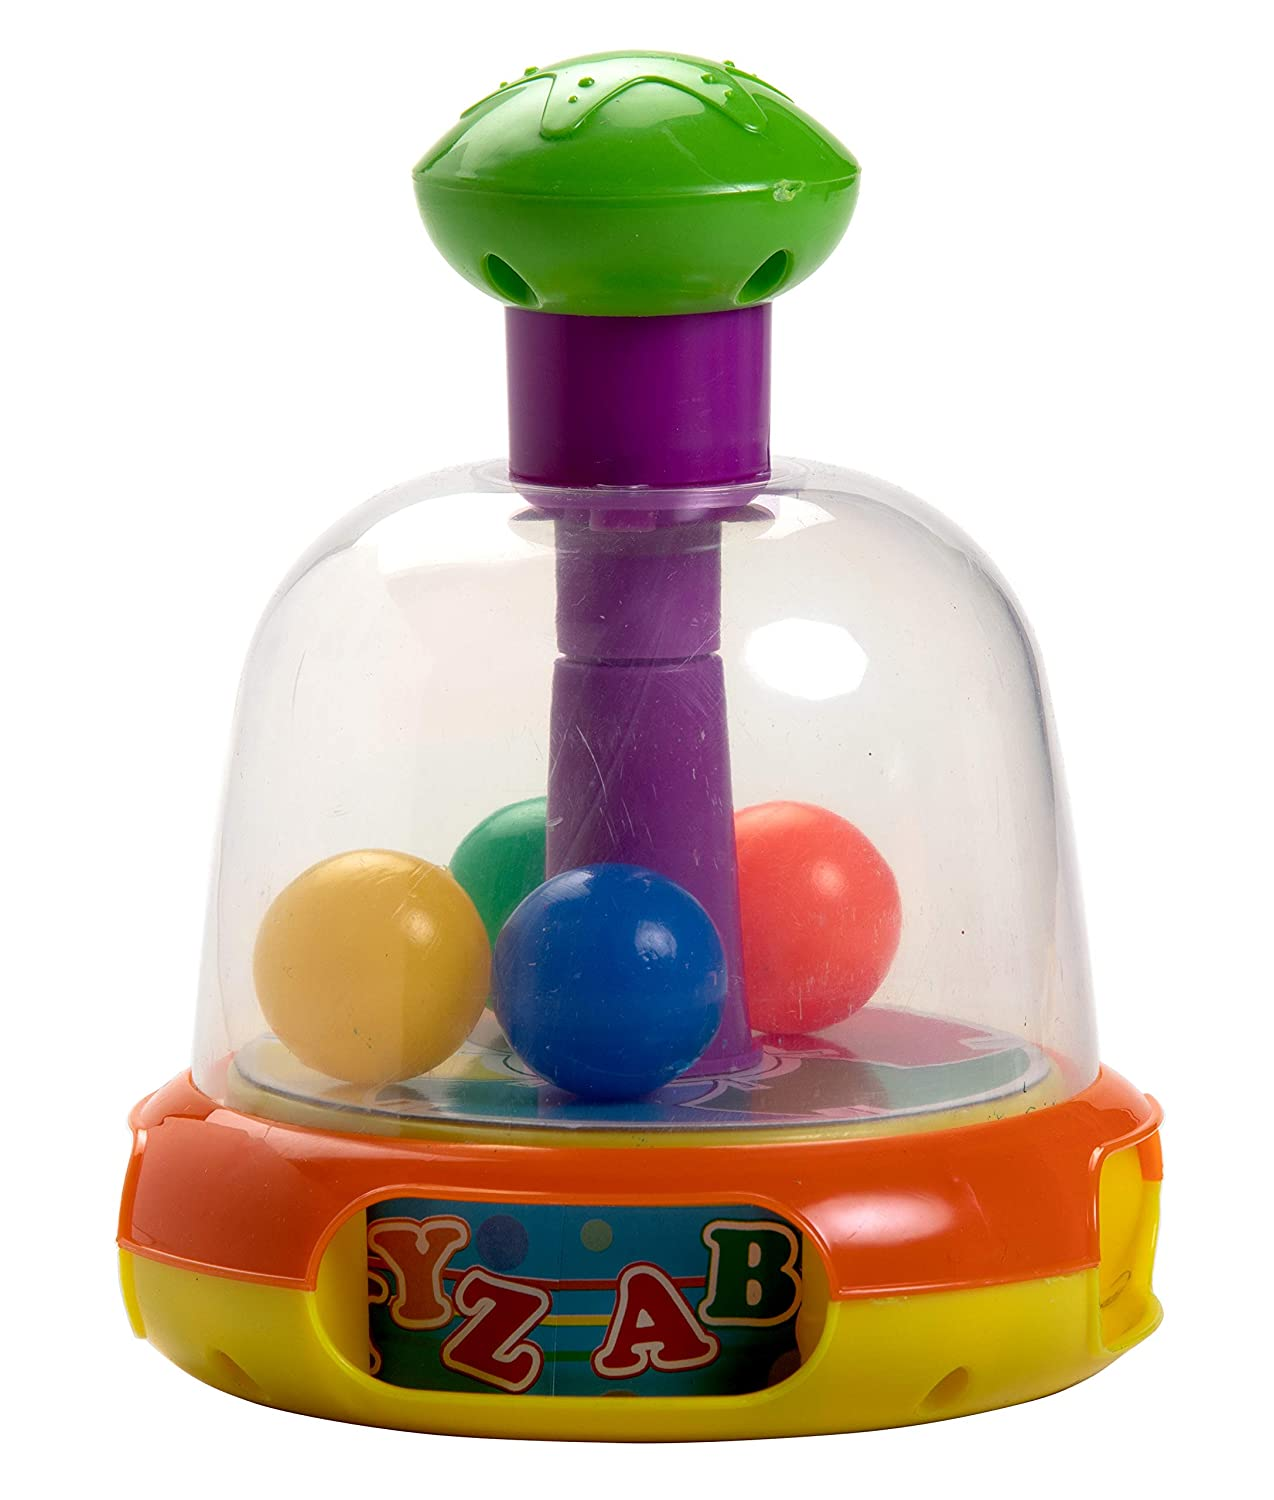 Luvlap Colorful Push and Spin Fun Rattle Toy for Baby